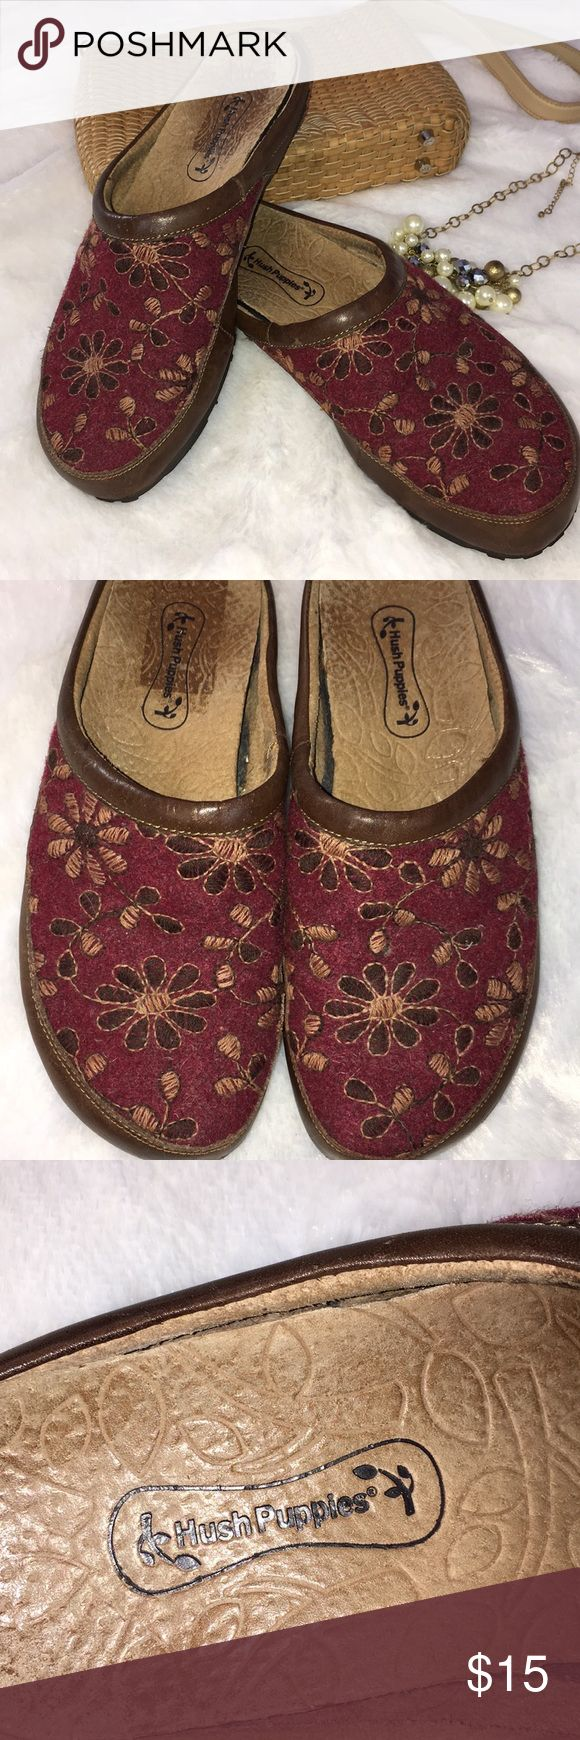 Hush puppies clogs Beautiful embroidery on these wool and leather clogs. No heel make theses a dream to wear. They run true to size but are a little wide. Hush Puppies Shoes Mules & Clogs